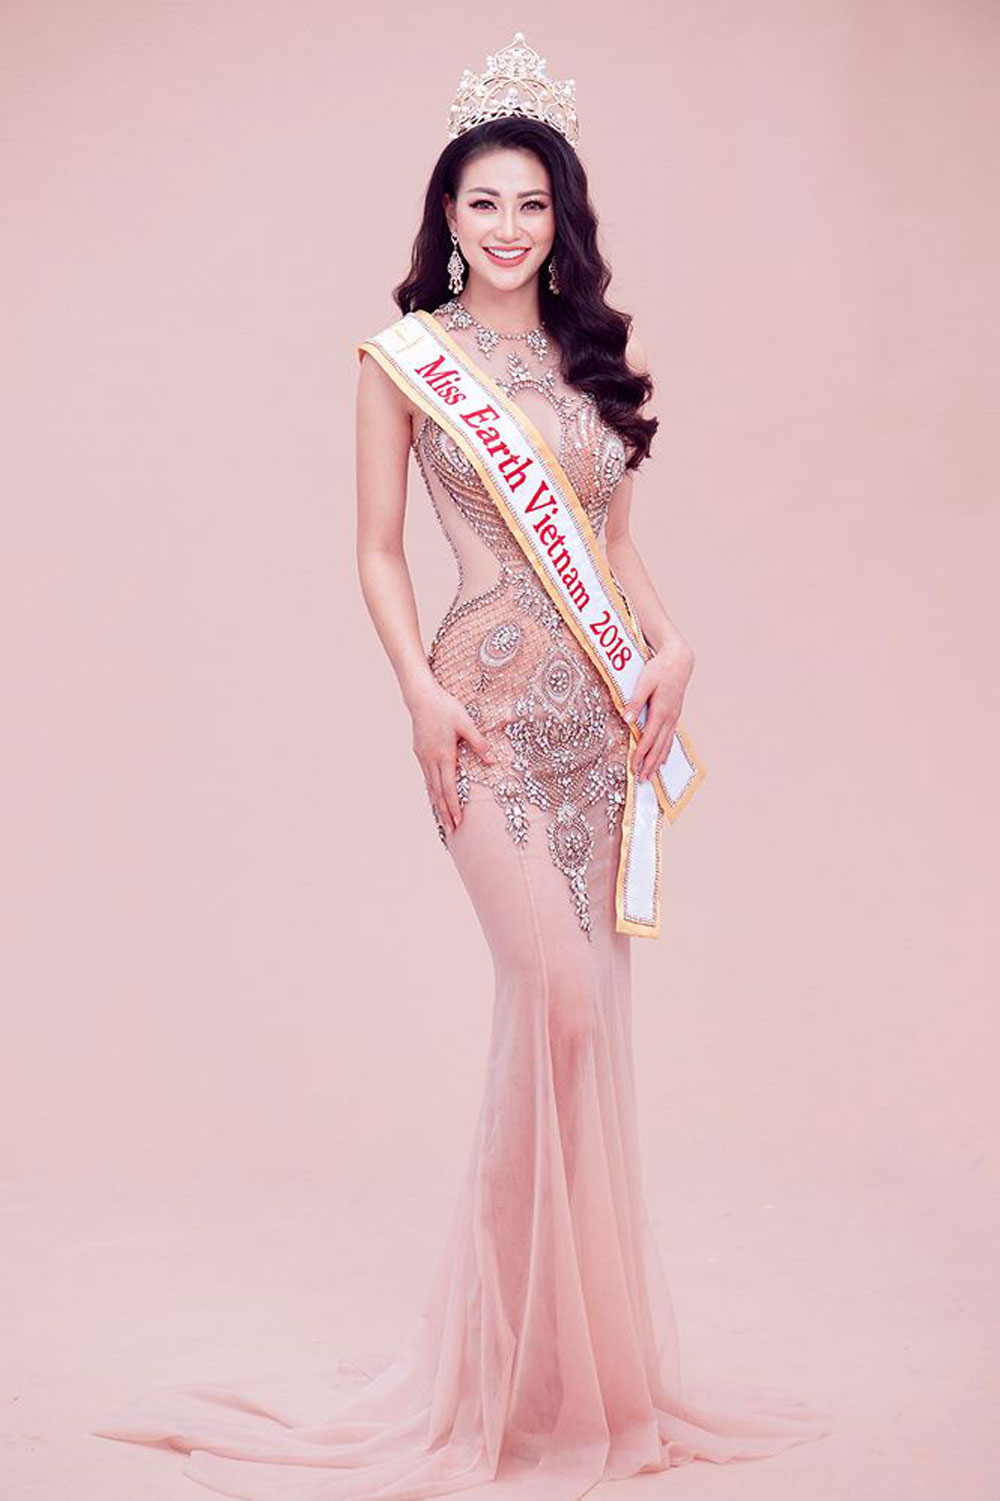 Vietnamese beauty, Miss Earth 2018, Nguyen Phuong Khanh,   the Philippines, gold medal, Asia & Oceania region